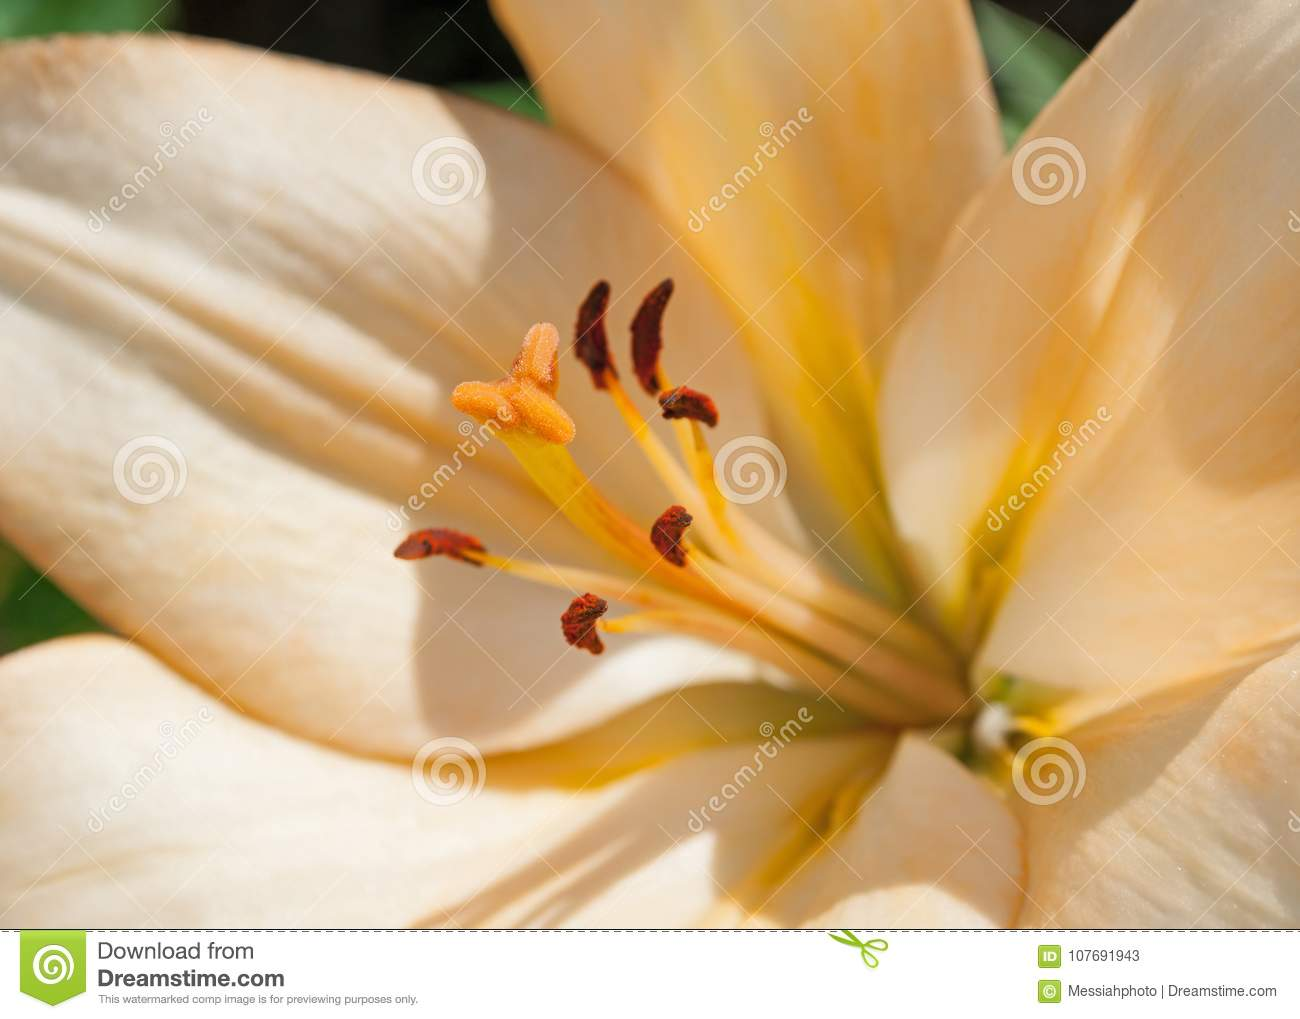 Lily flower of peach color blooming in the garden stock image lily flower of peach color blooming in the garden izmirmasajfo Choice Image